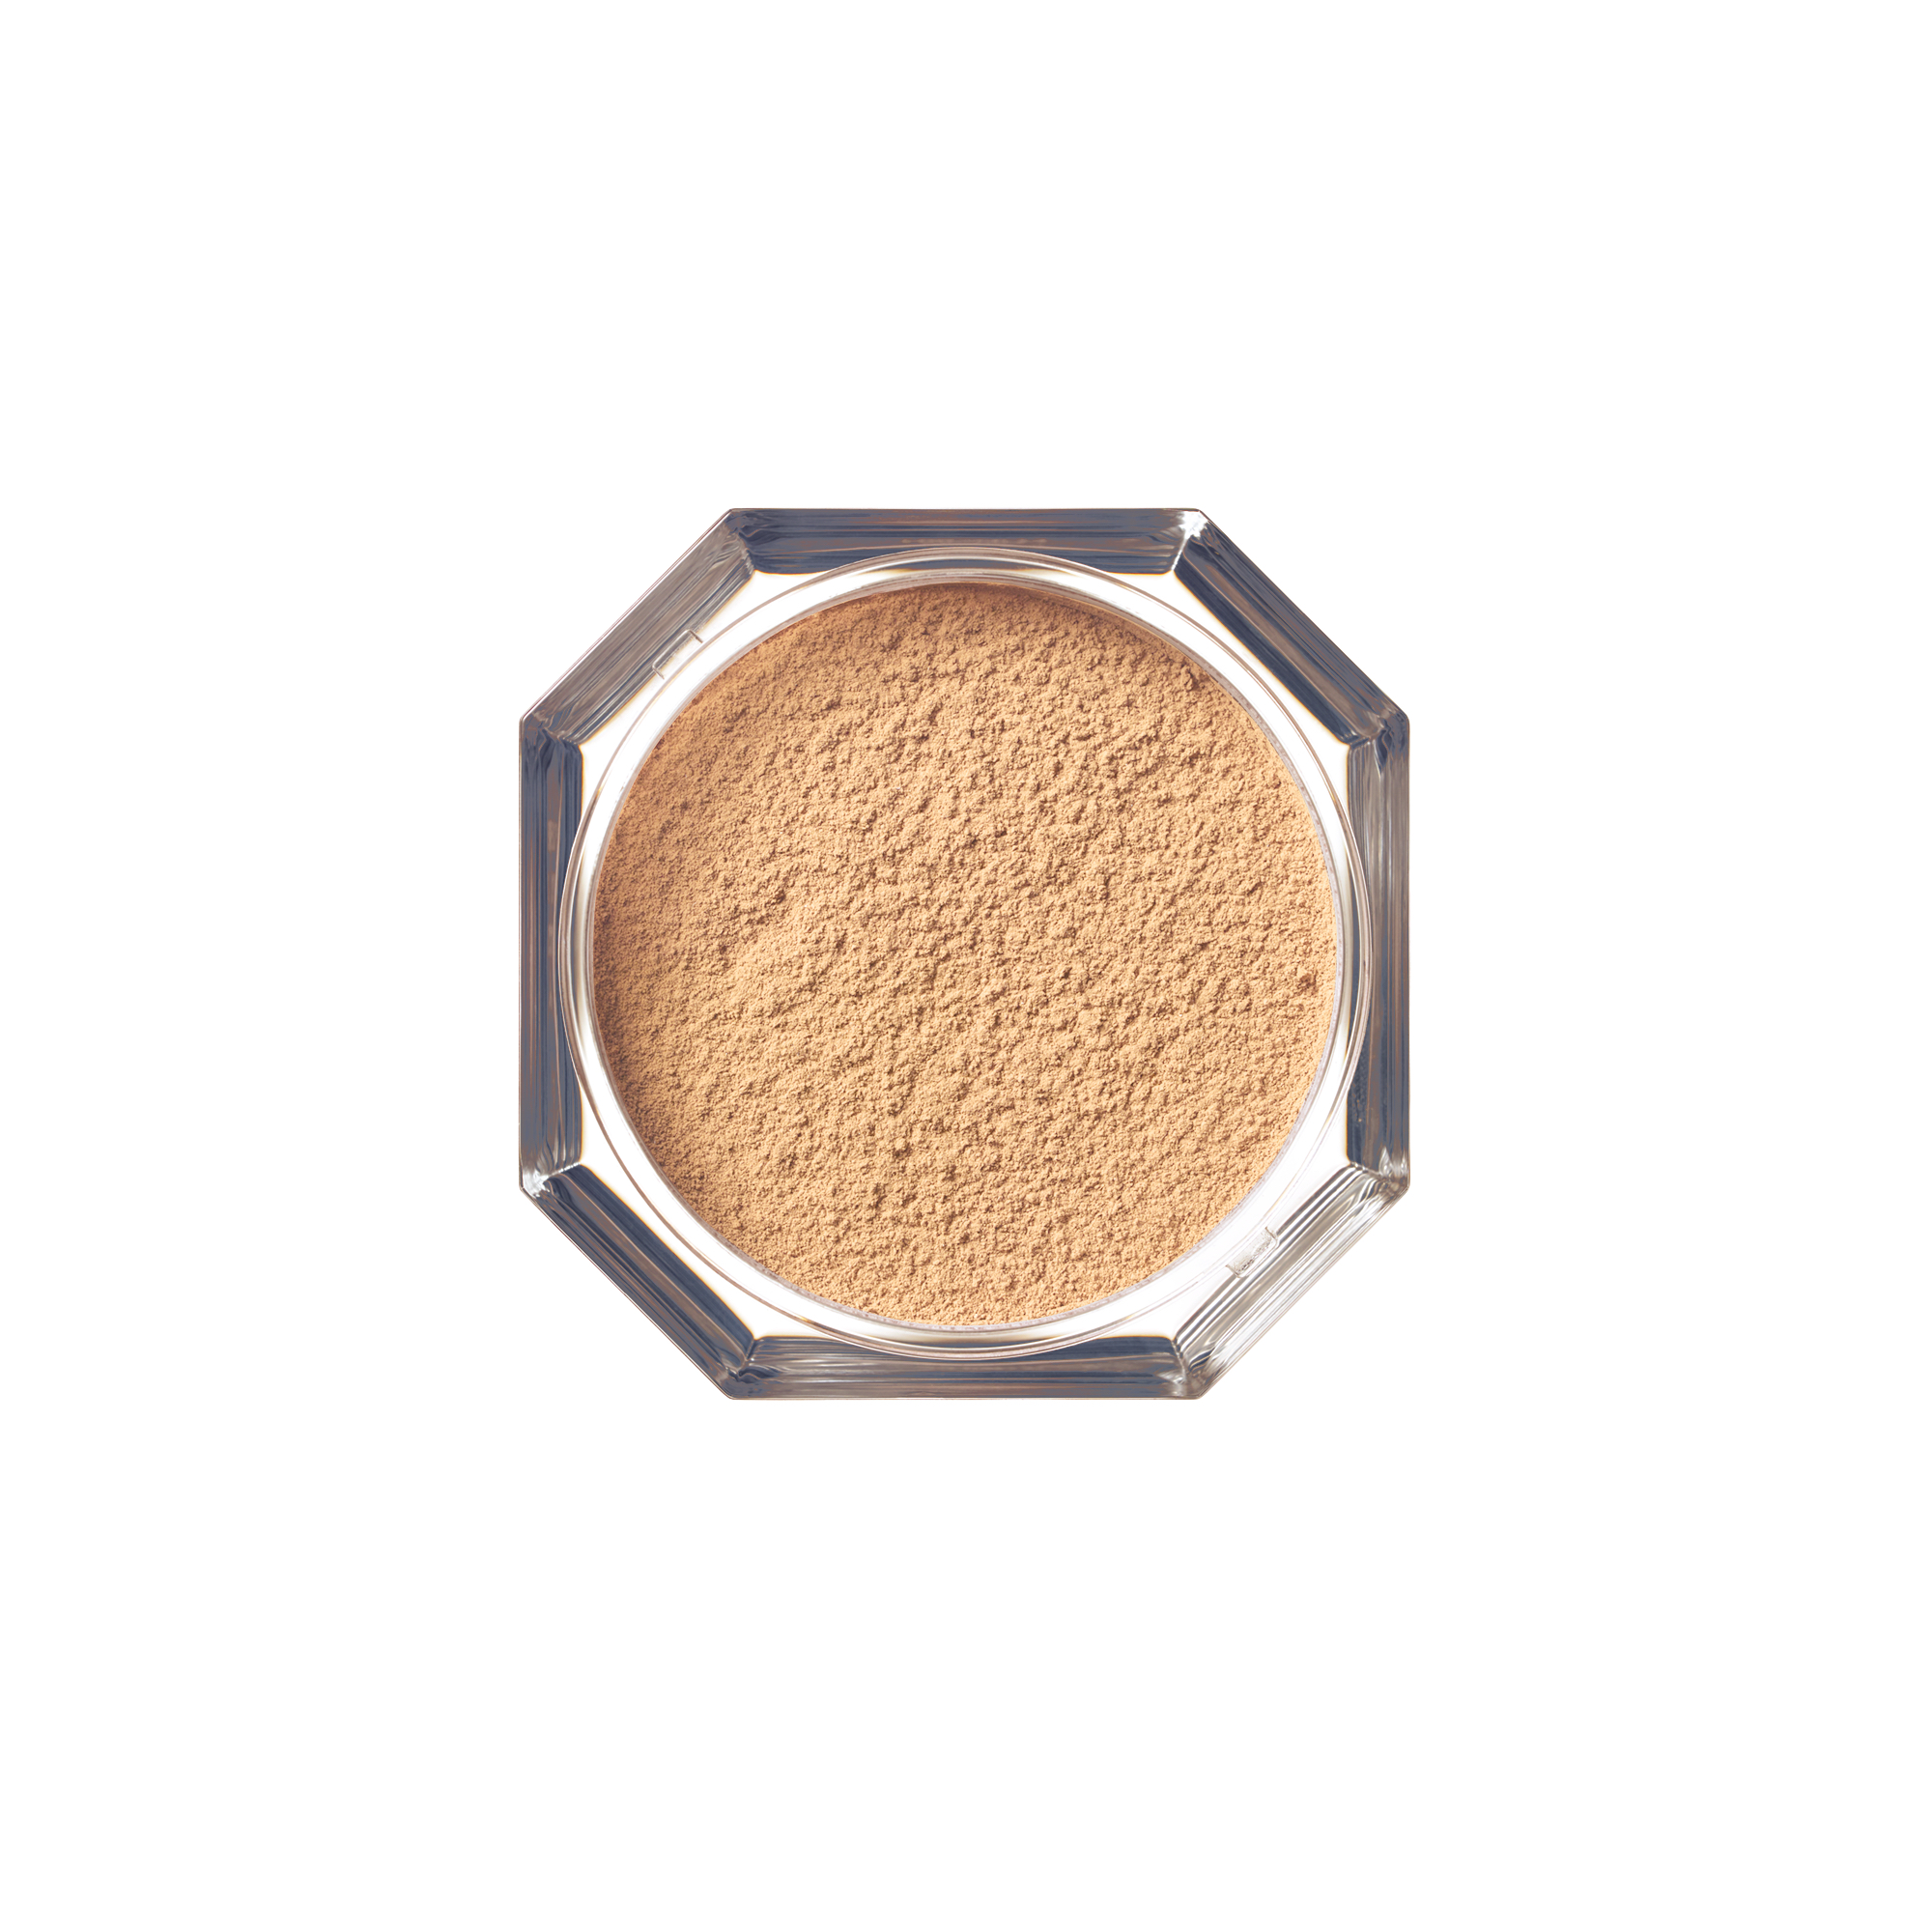 FB Pro Filt'r Instant Retouch Setting Powder - Cashew - AED 158